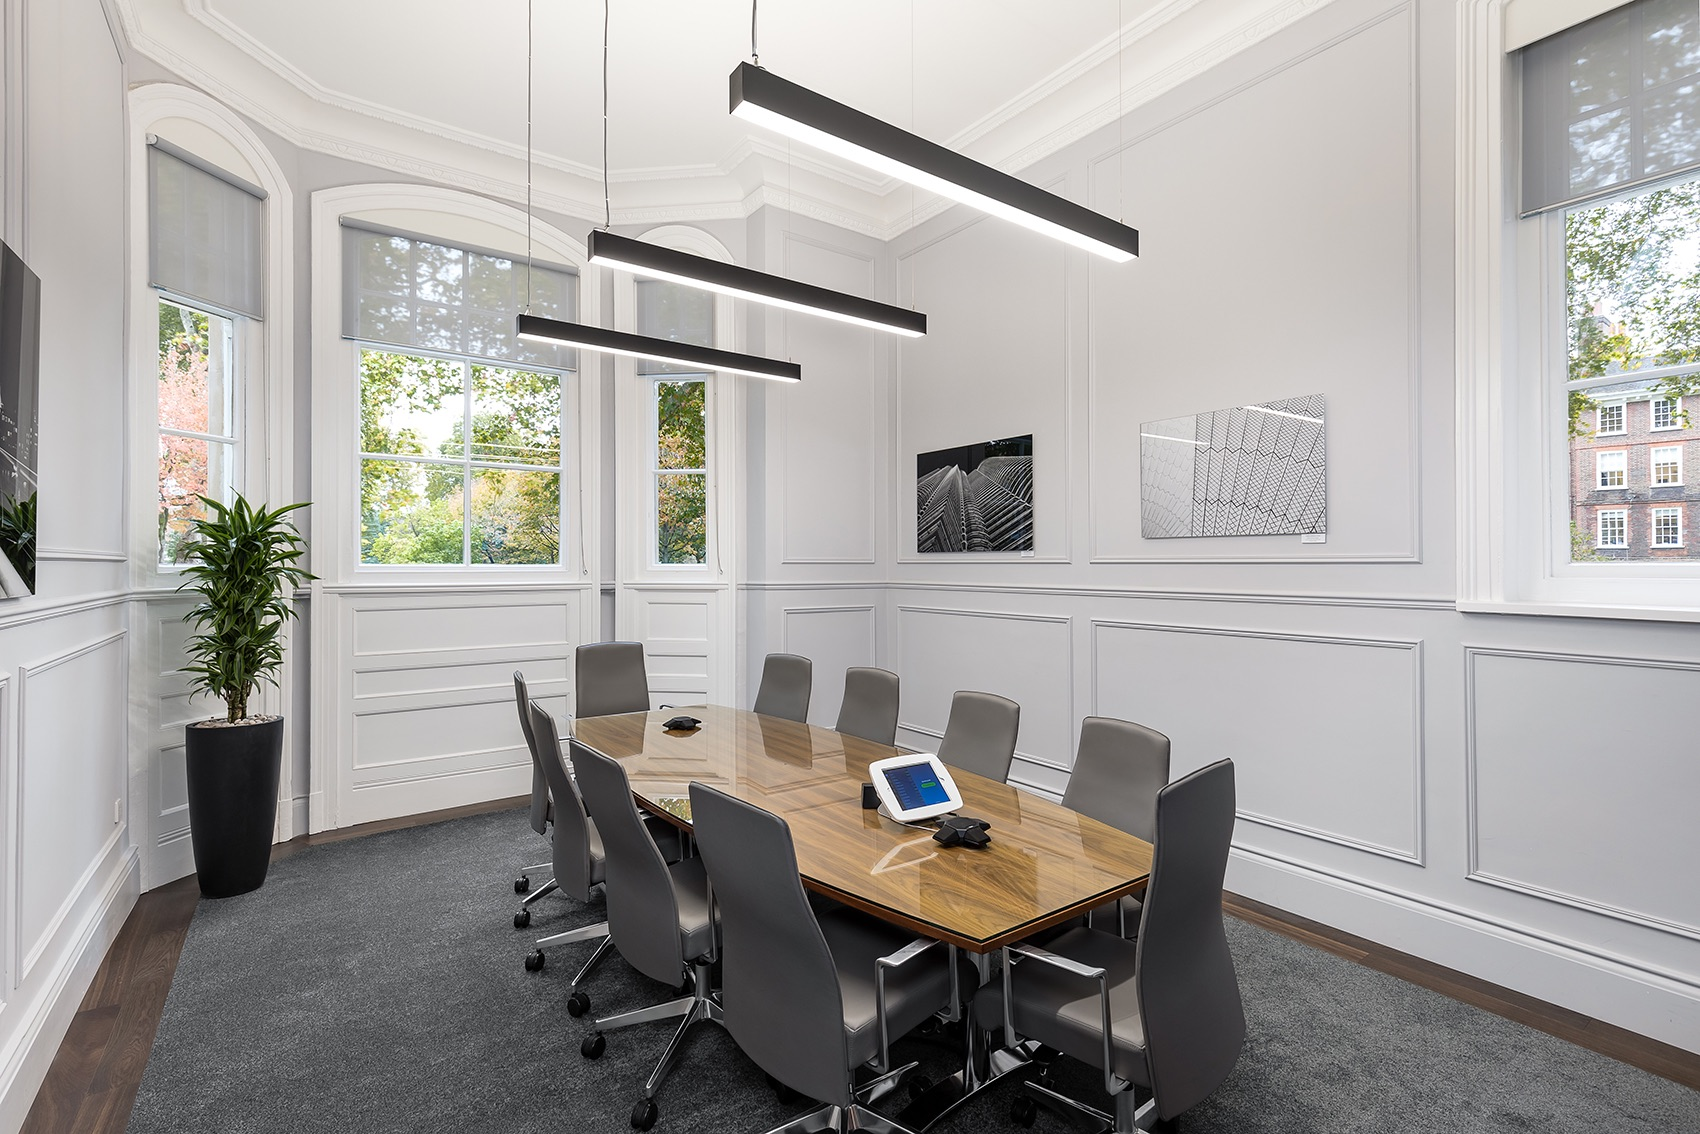 36-group-london-office-4